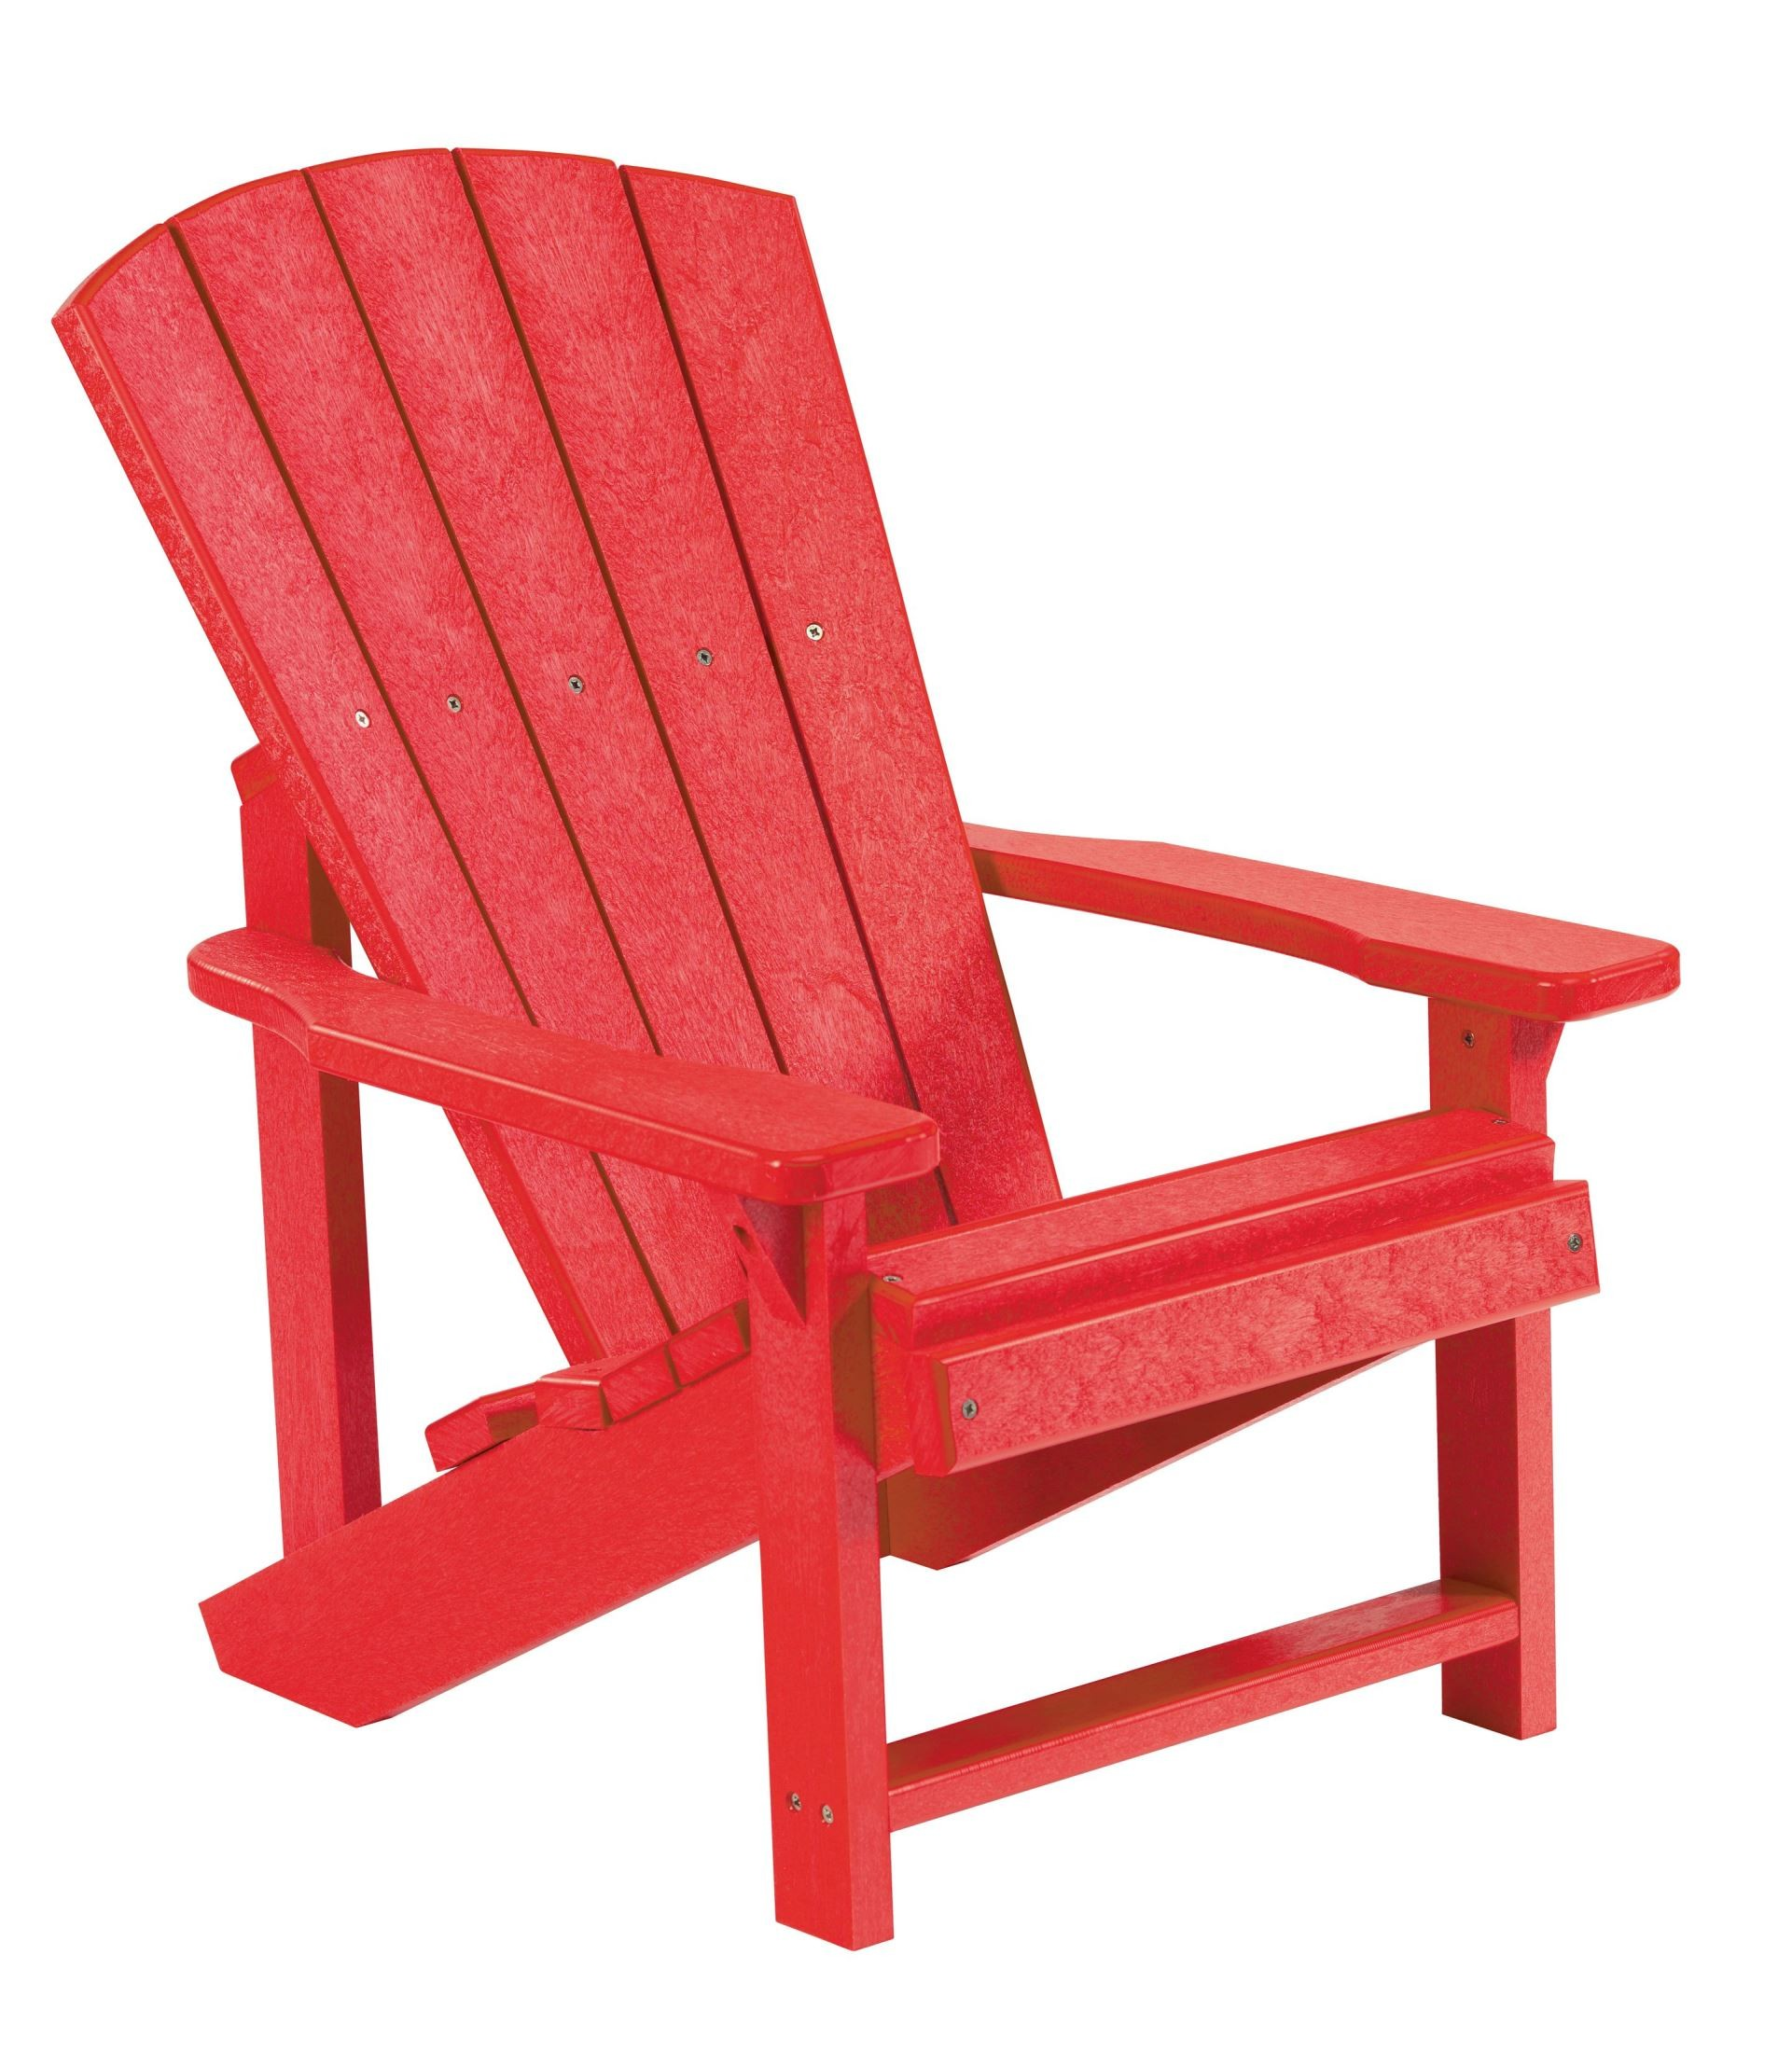 Red Adirondack Chairs Generations Red Kids Adirondack Chair From Cr Plastic C08